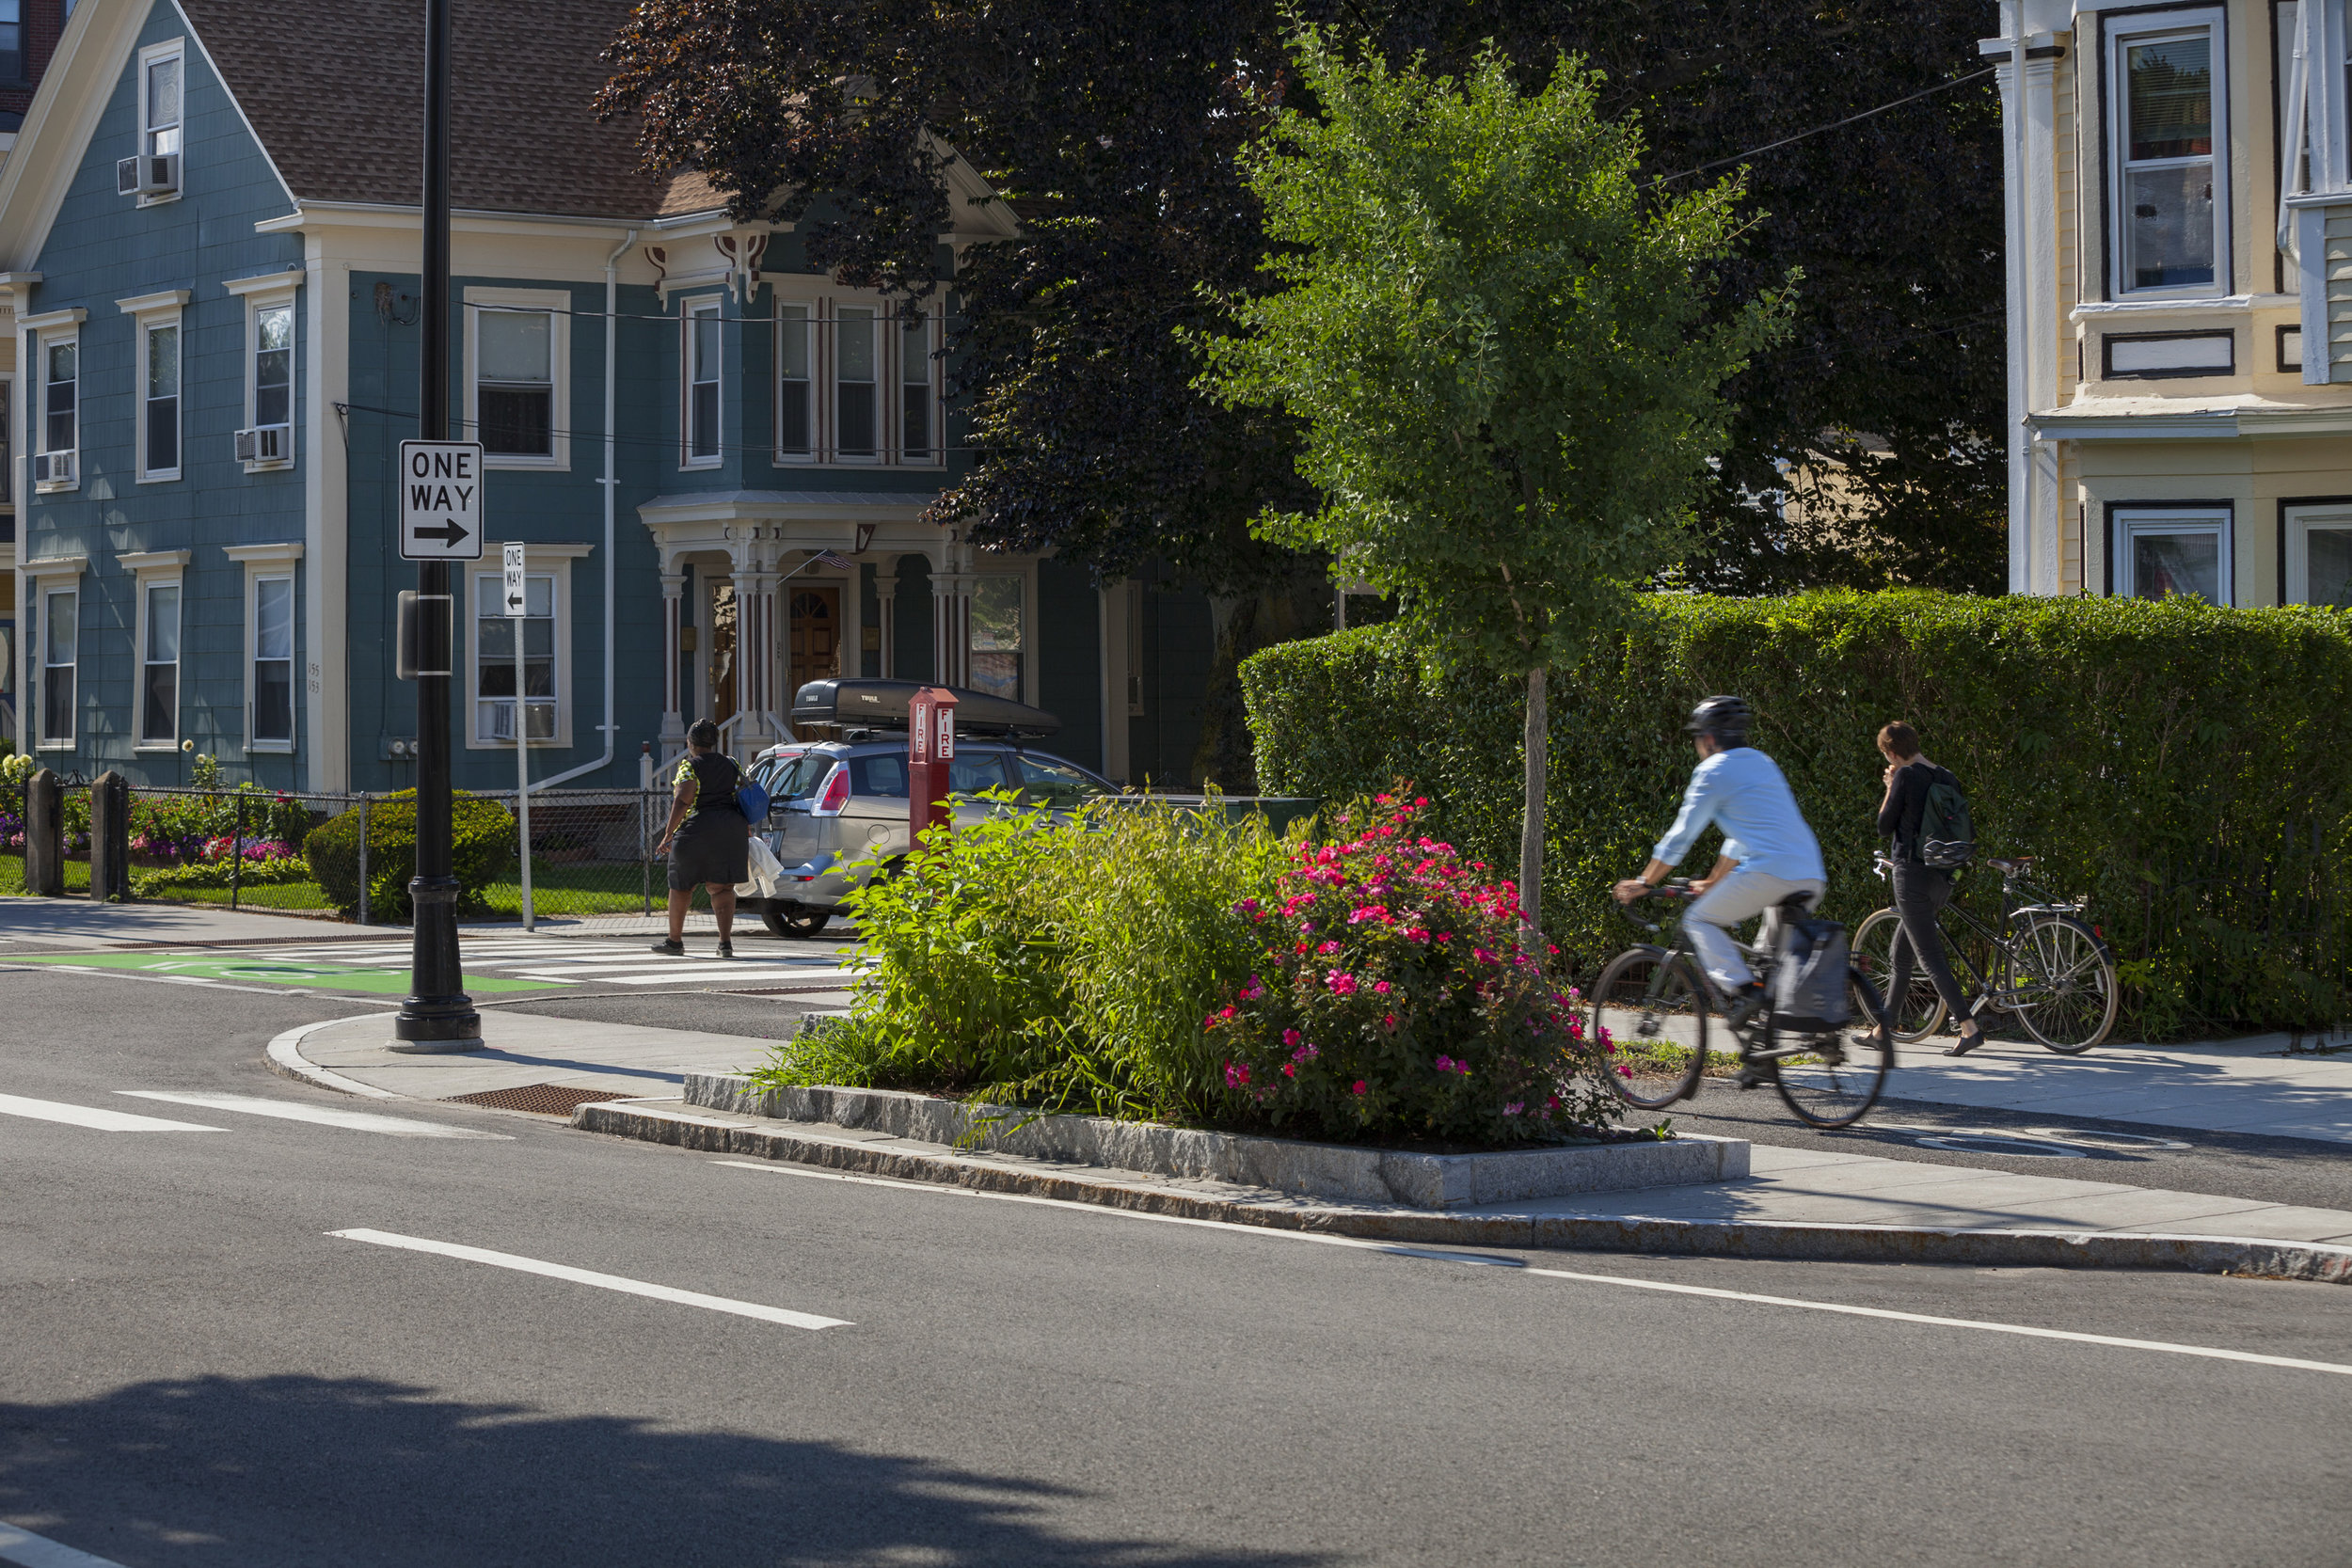 Western Avenue Complete Streets (Photo by Anthony Crisafulli Photography)